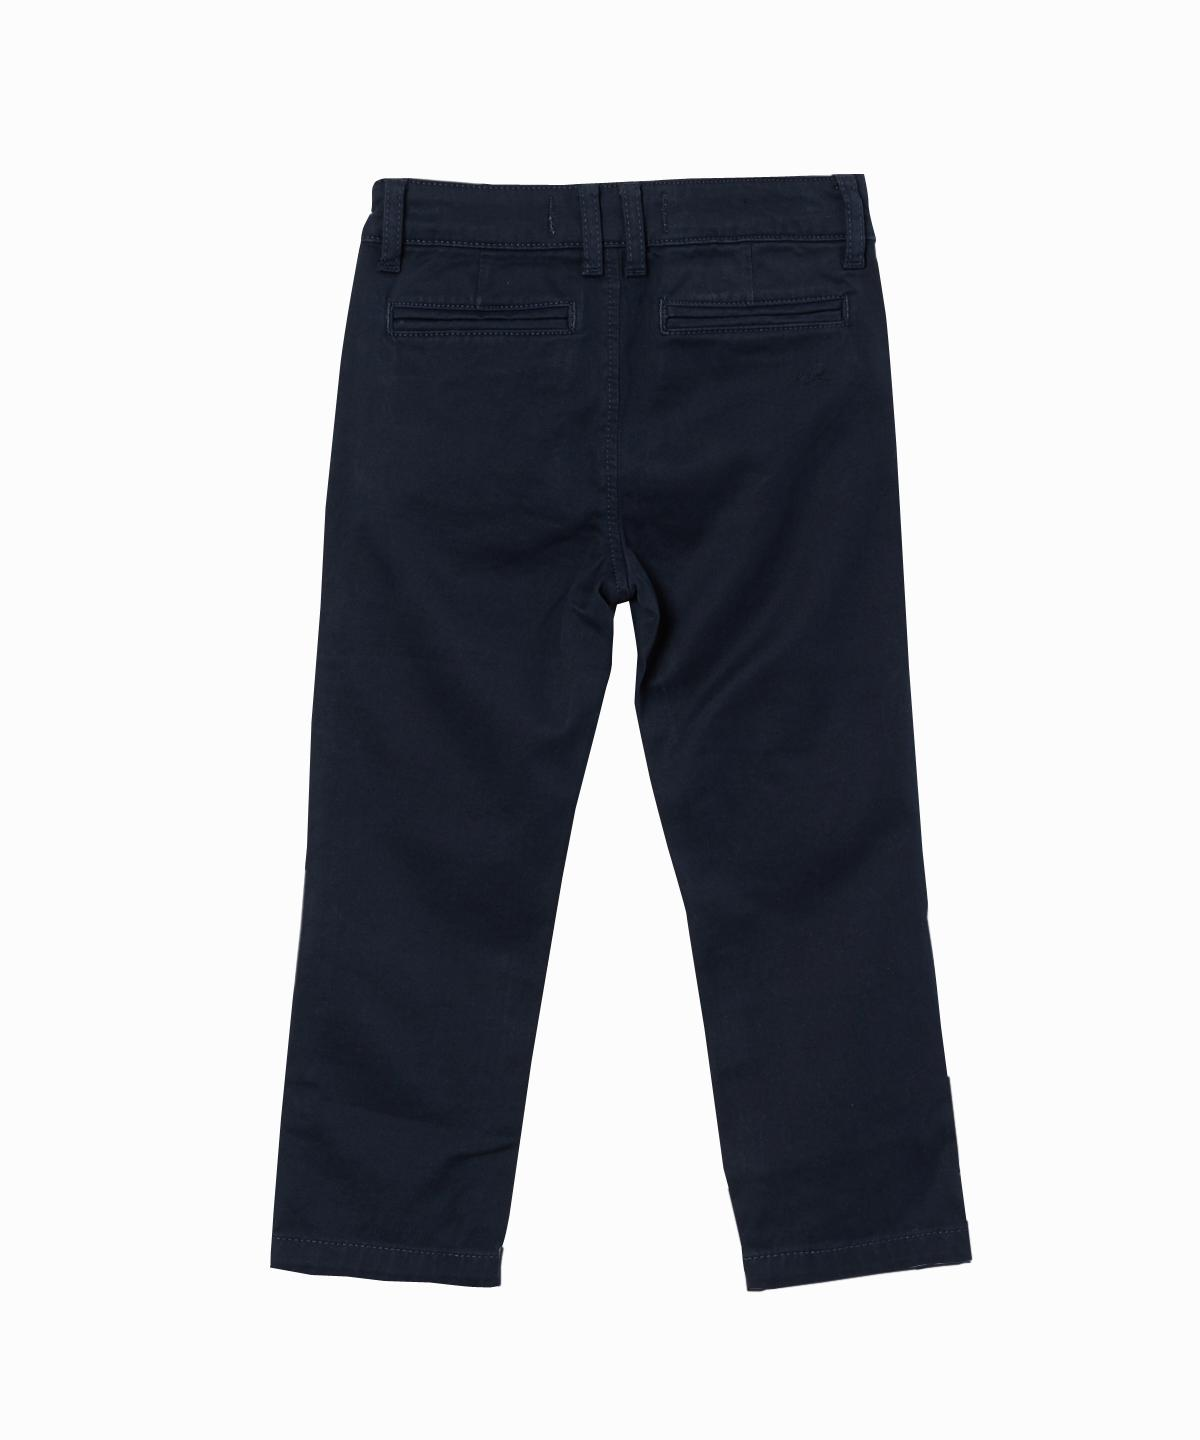 Timmy Slim Navy Chino Pants